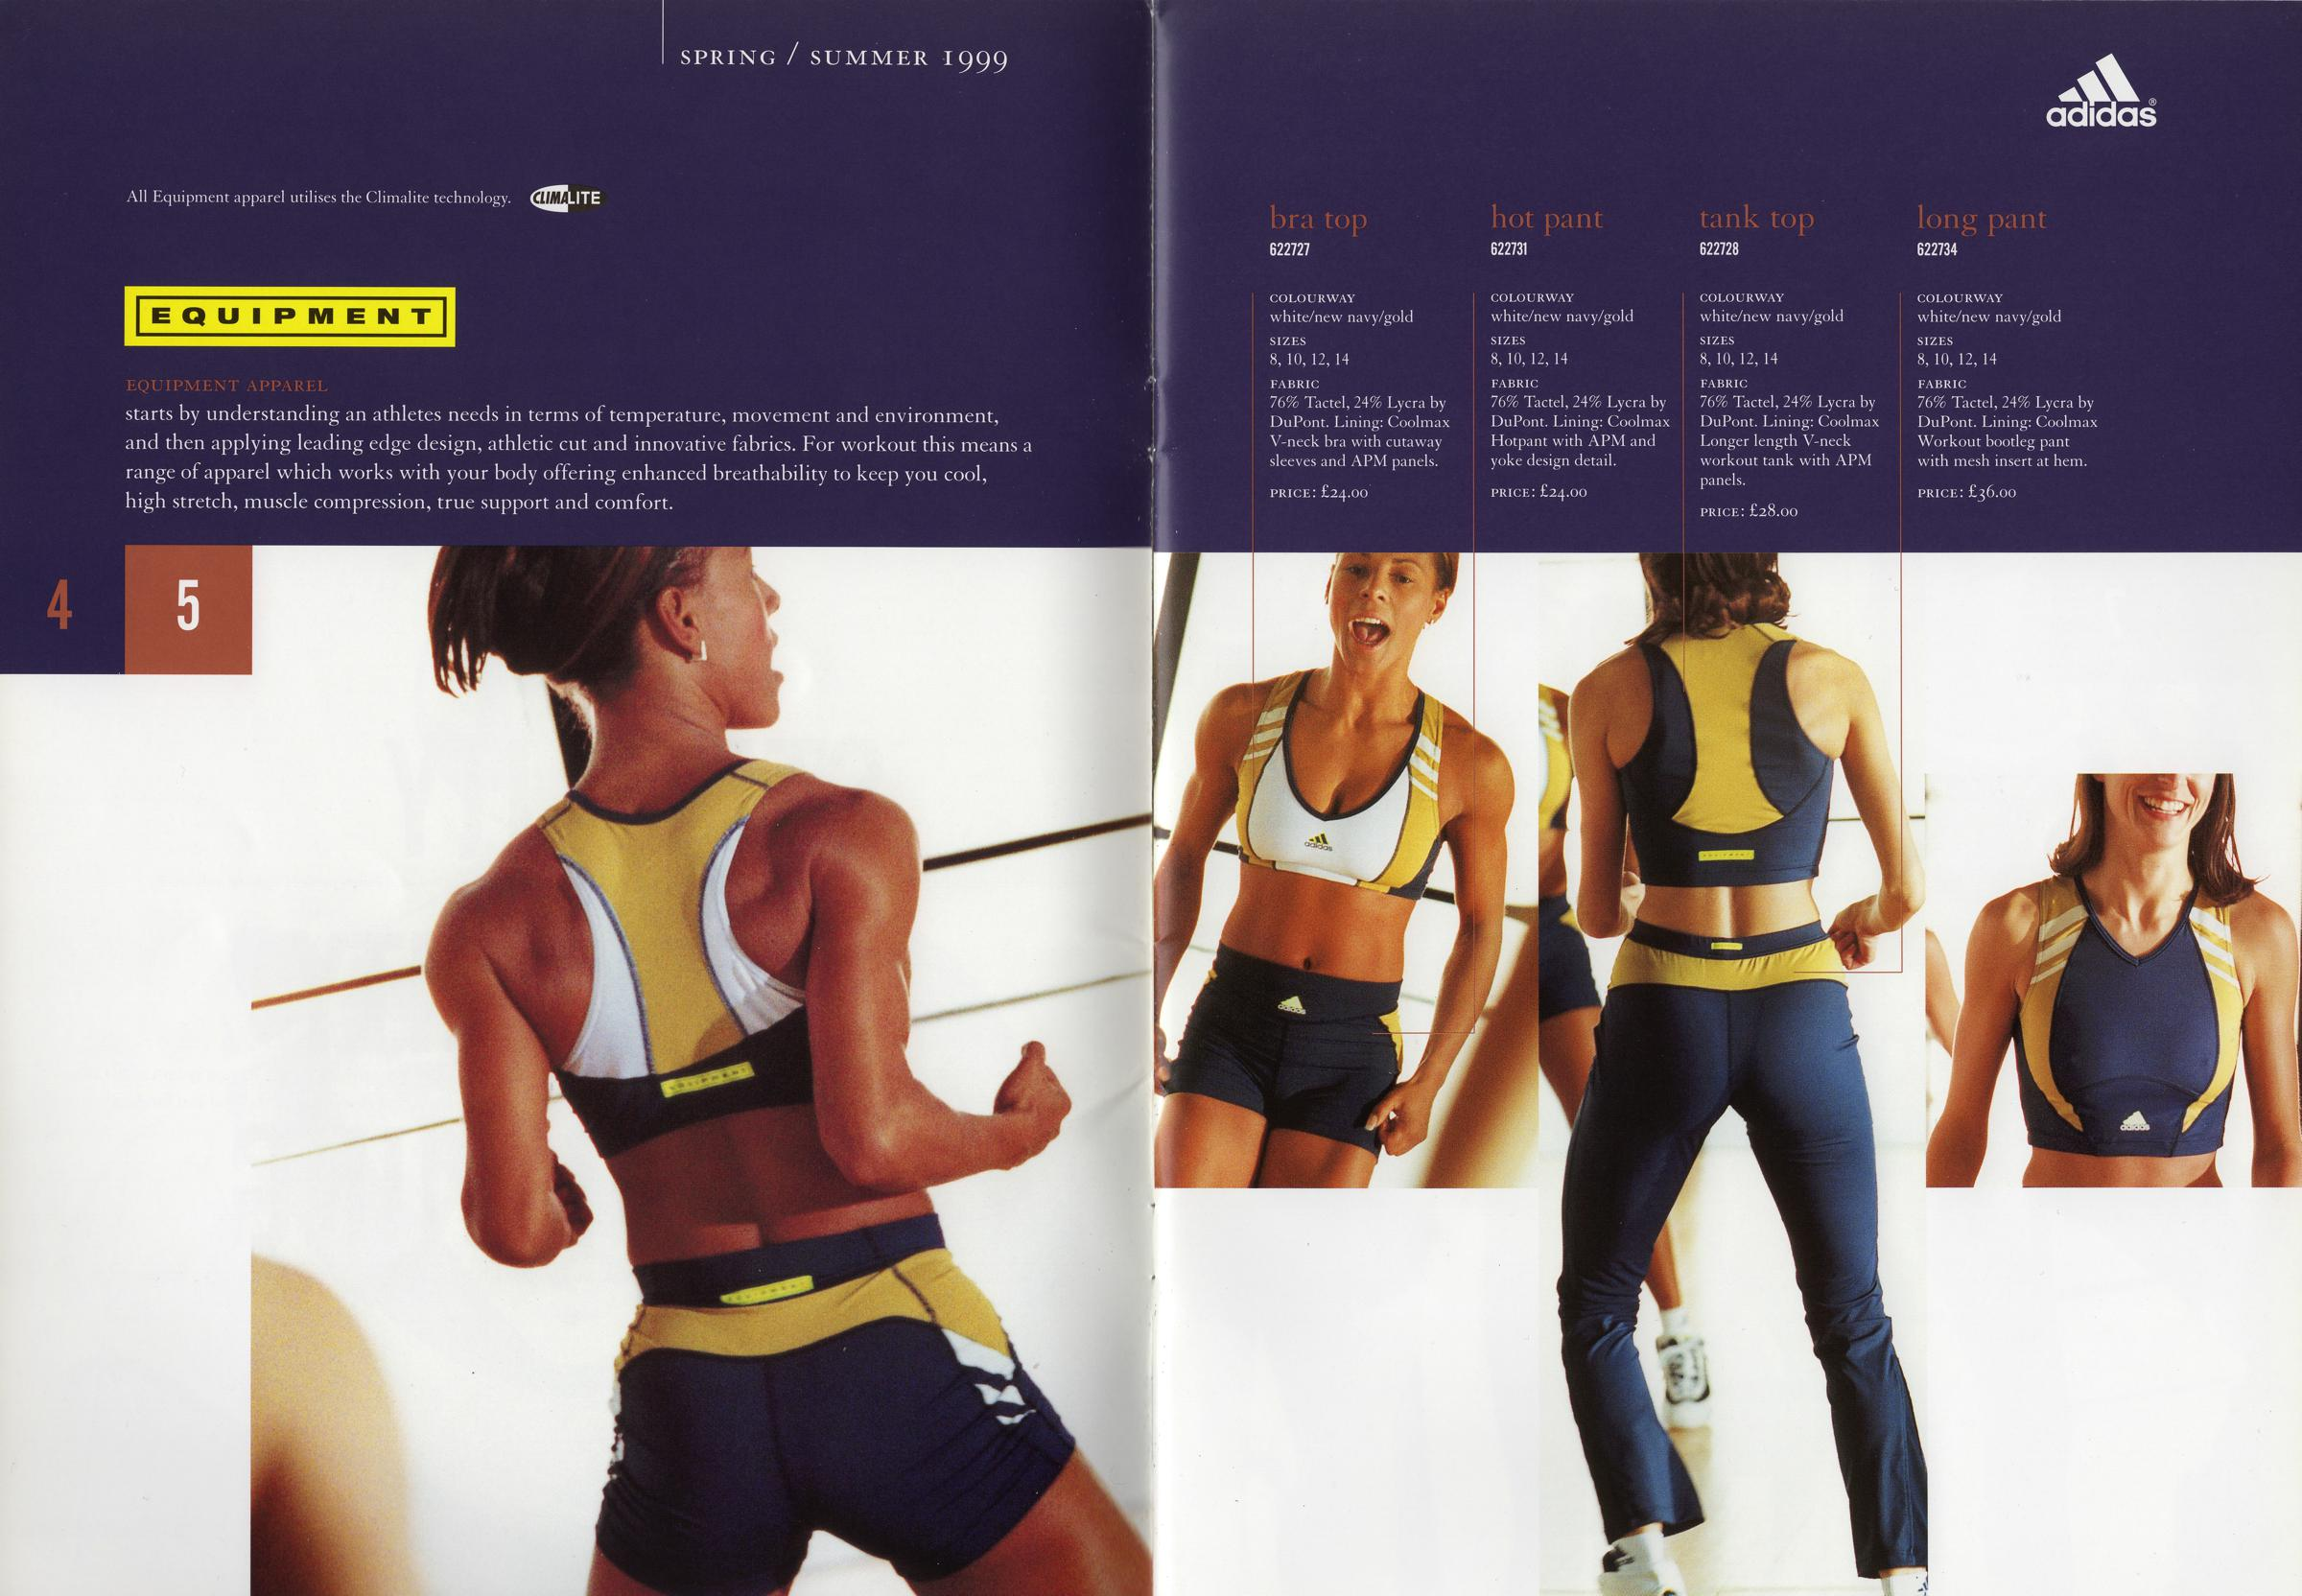 Ru-tee Block - Adidas - Instructor Range Magazine - Spring-Summer 1999 - Page 4-5